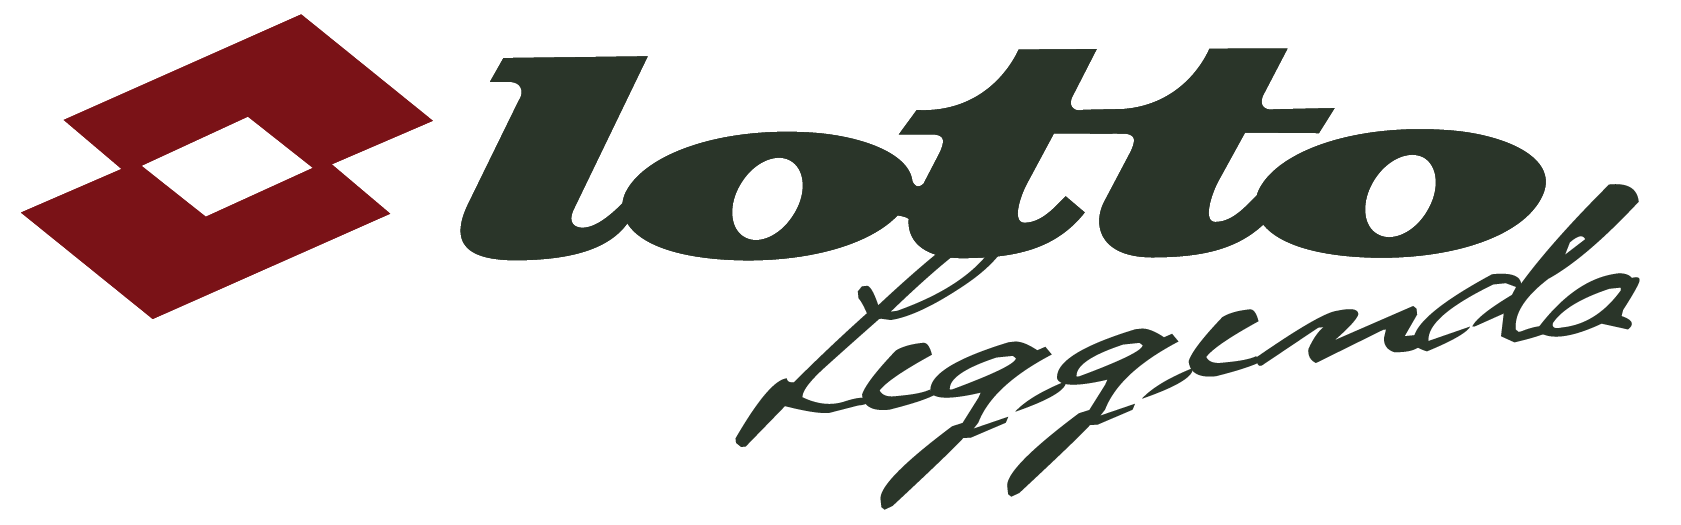 Lotto Sport South Africa Official Supplier.